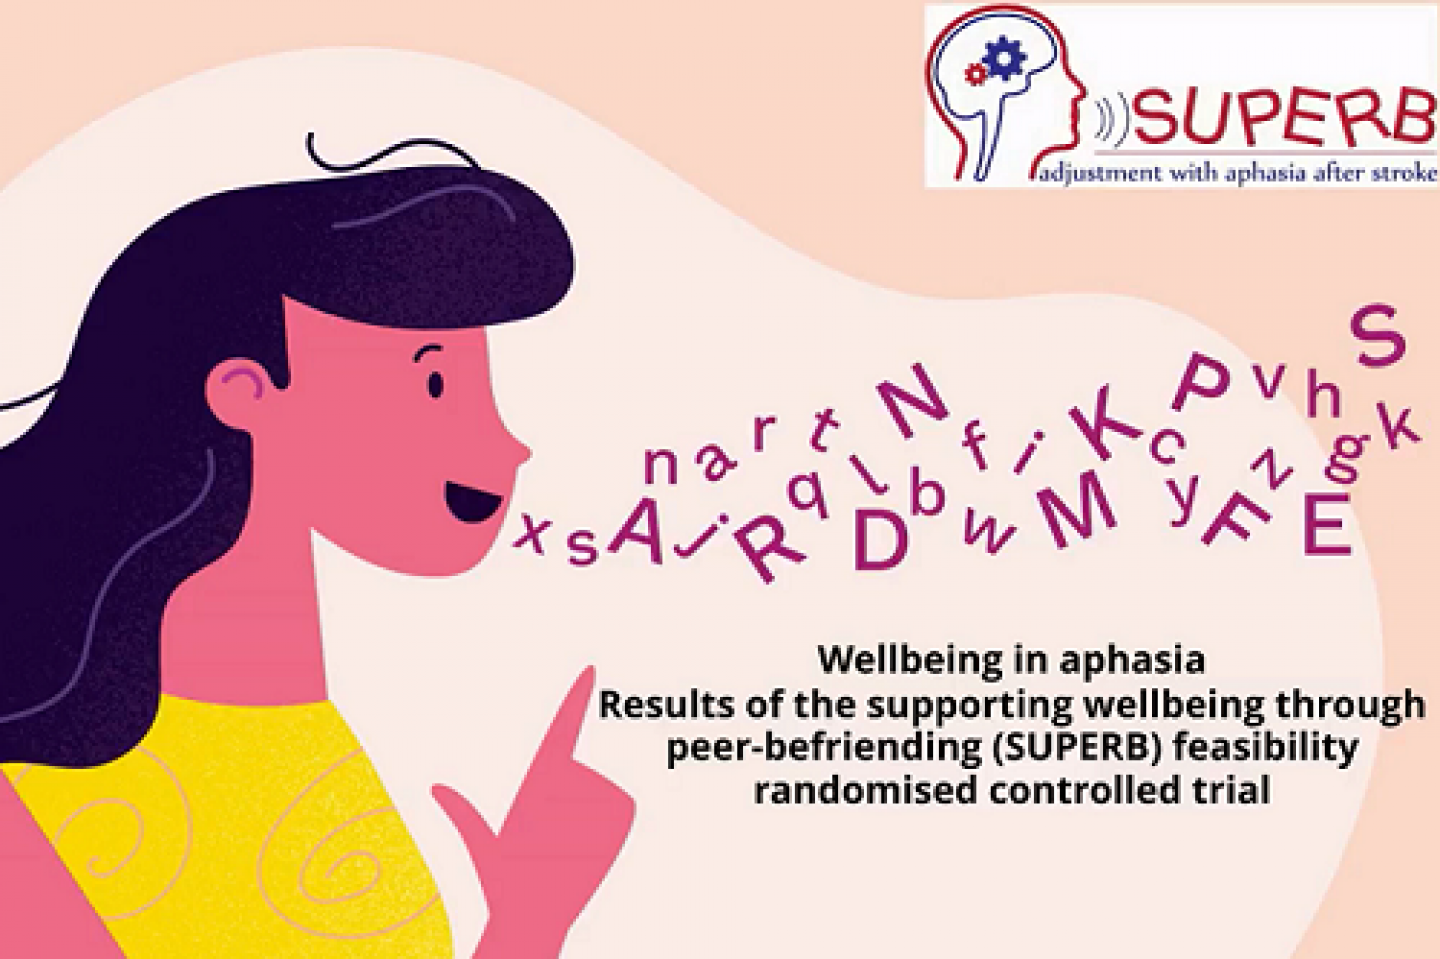 Logo and full title for the SUPERB trial of peer befriending in aphasia